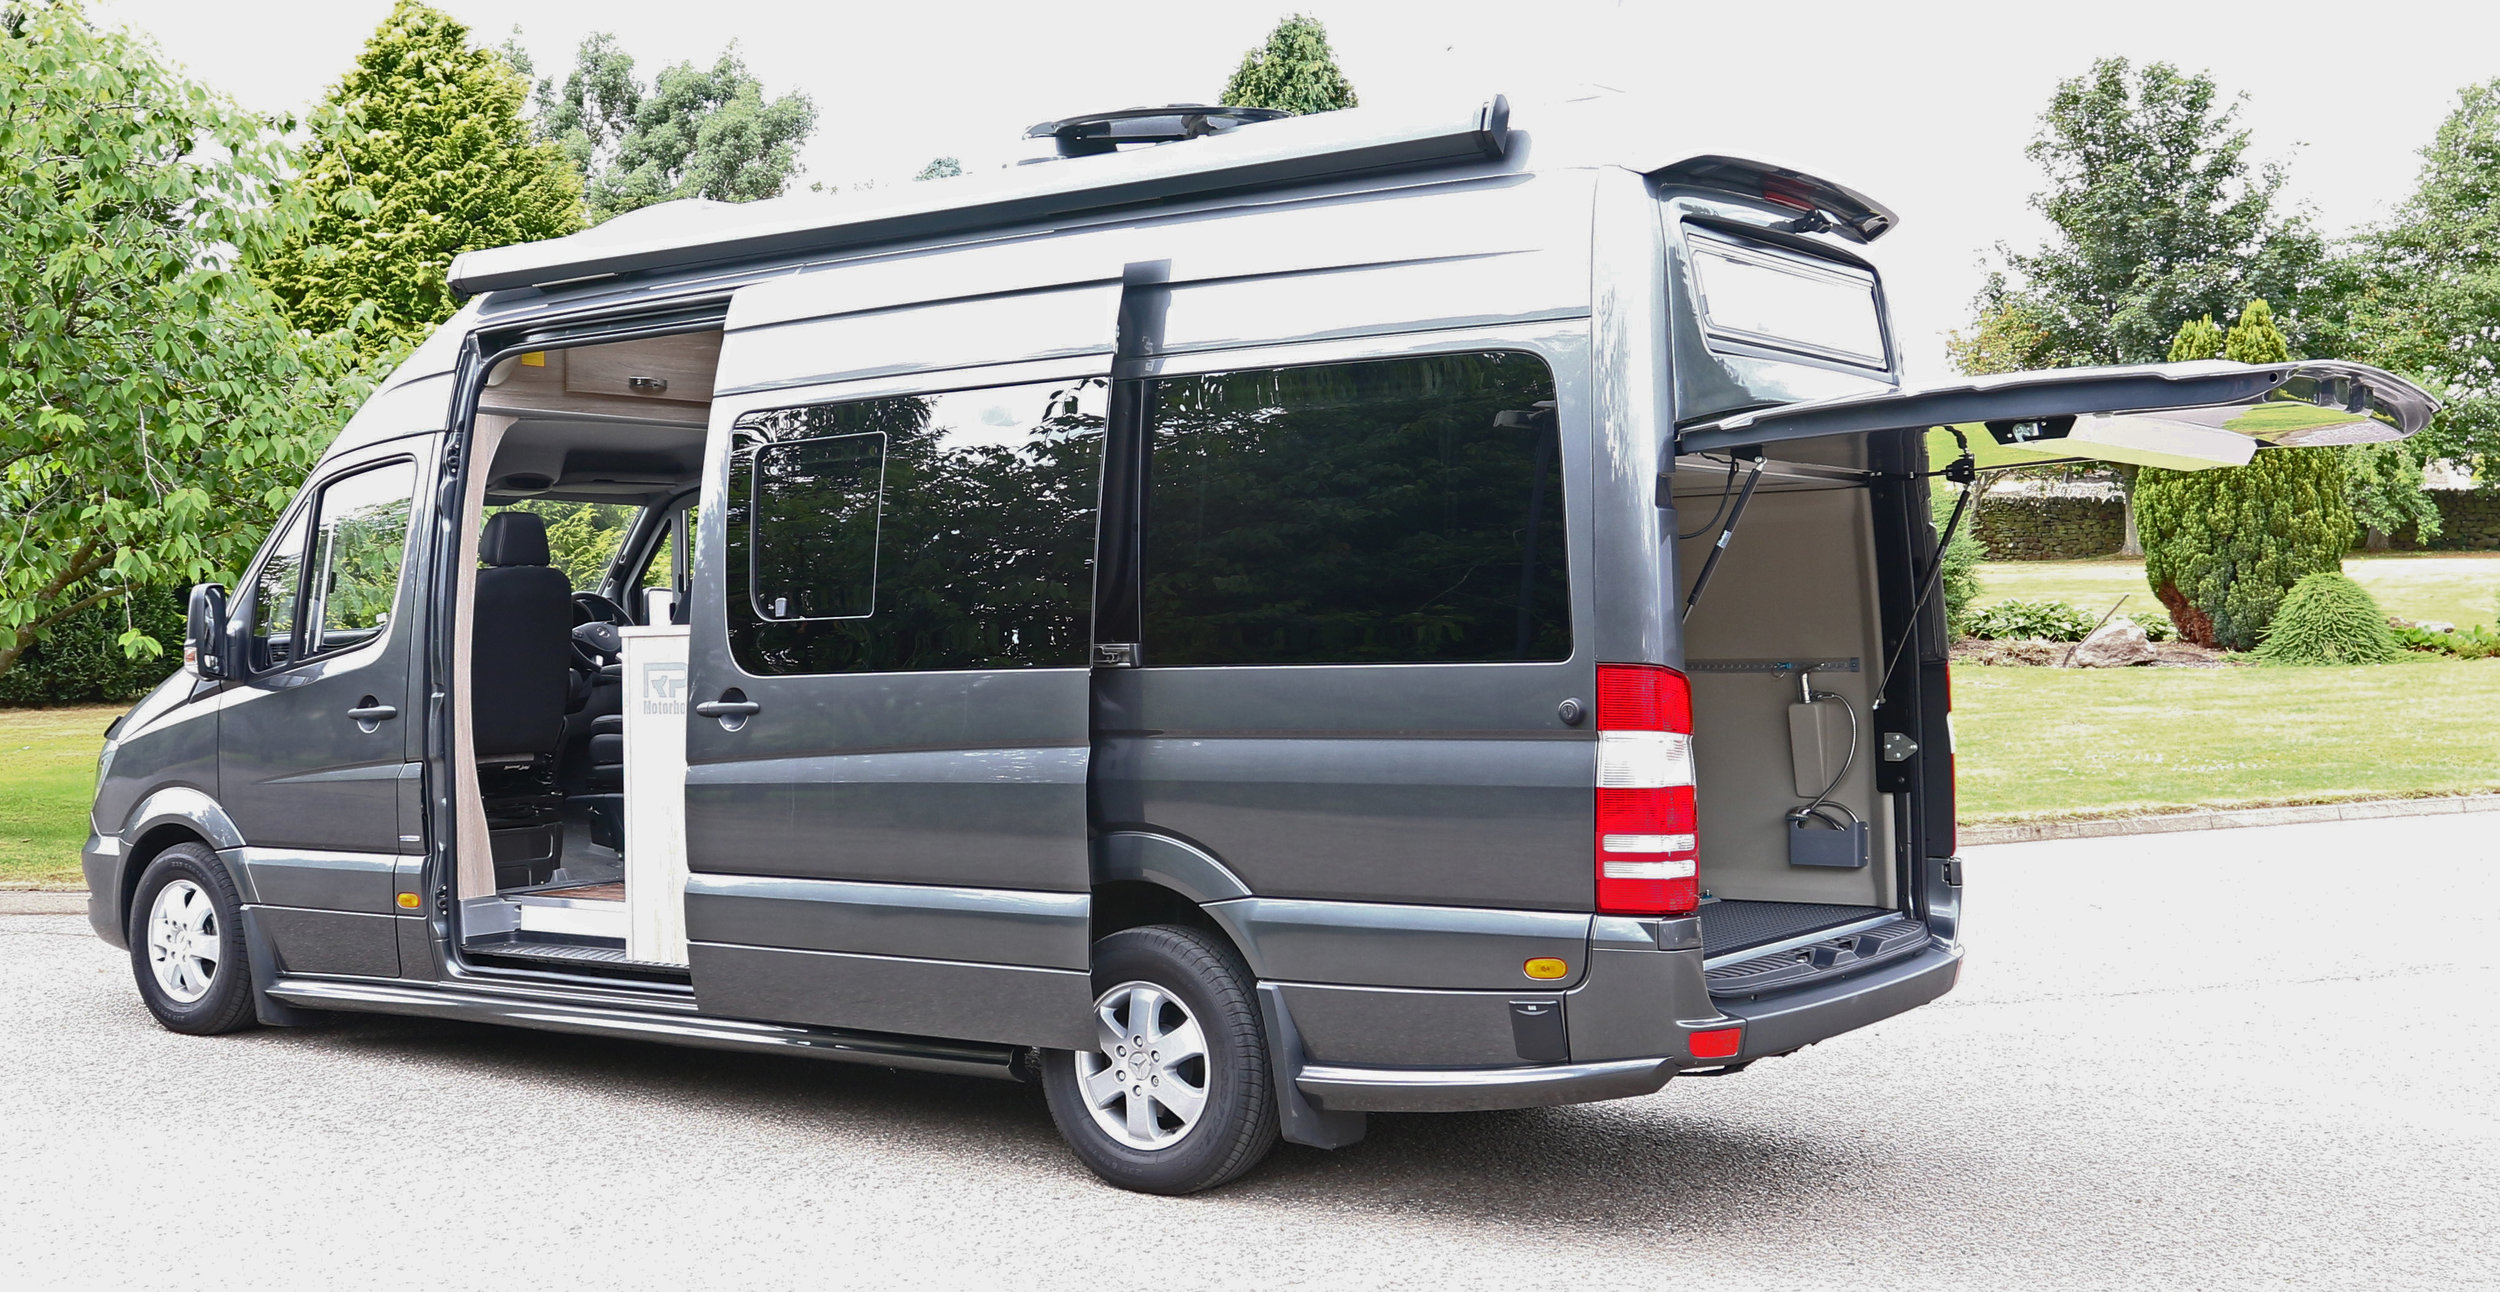 Optional up and over door with rear garage - sport option